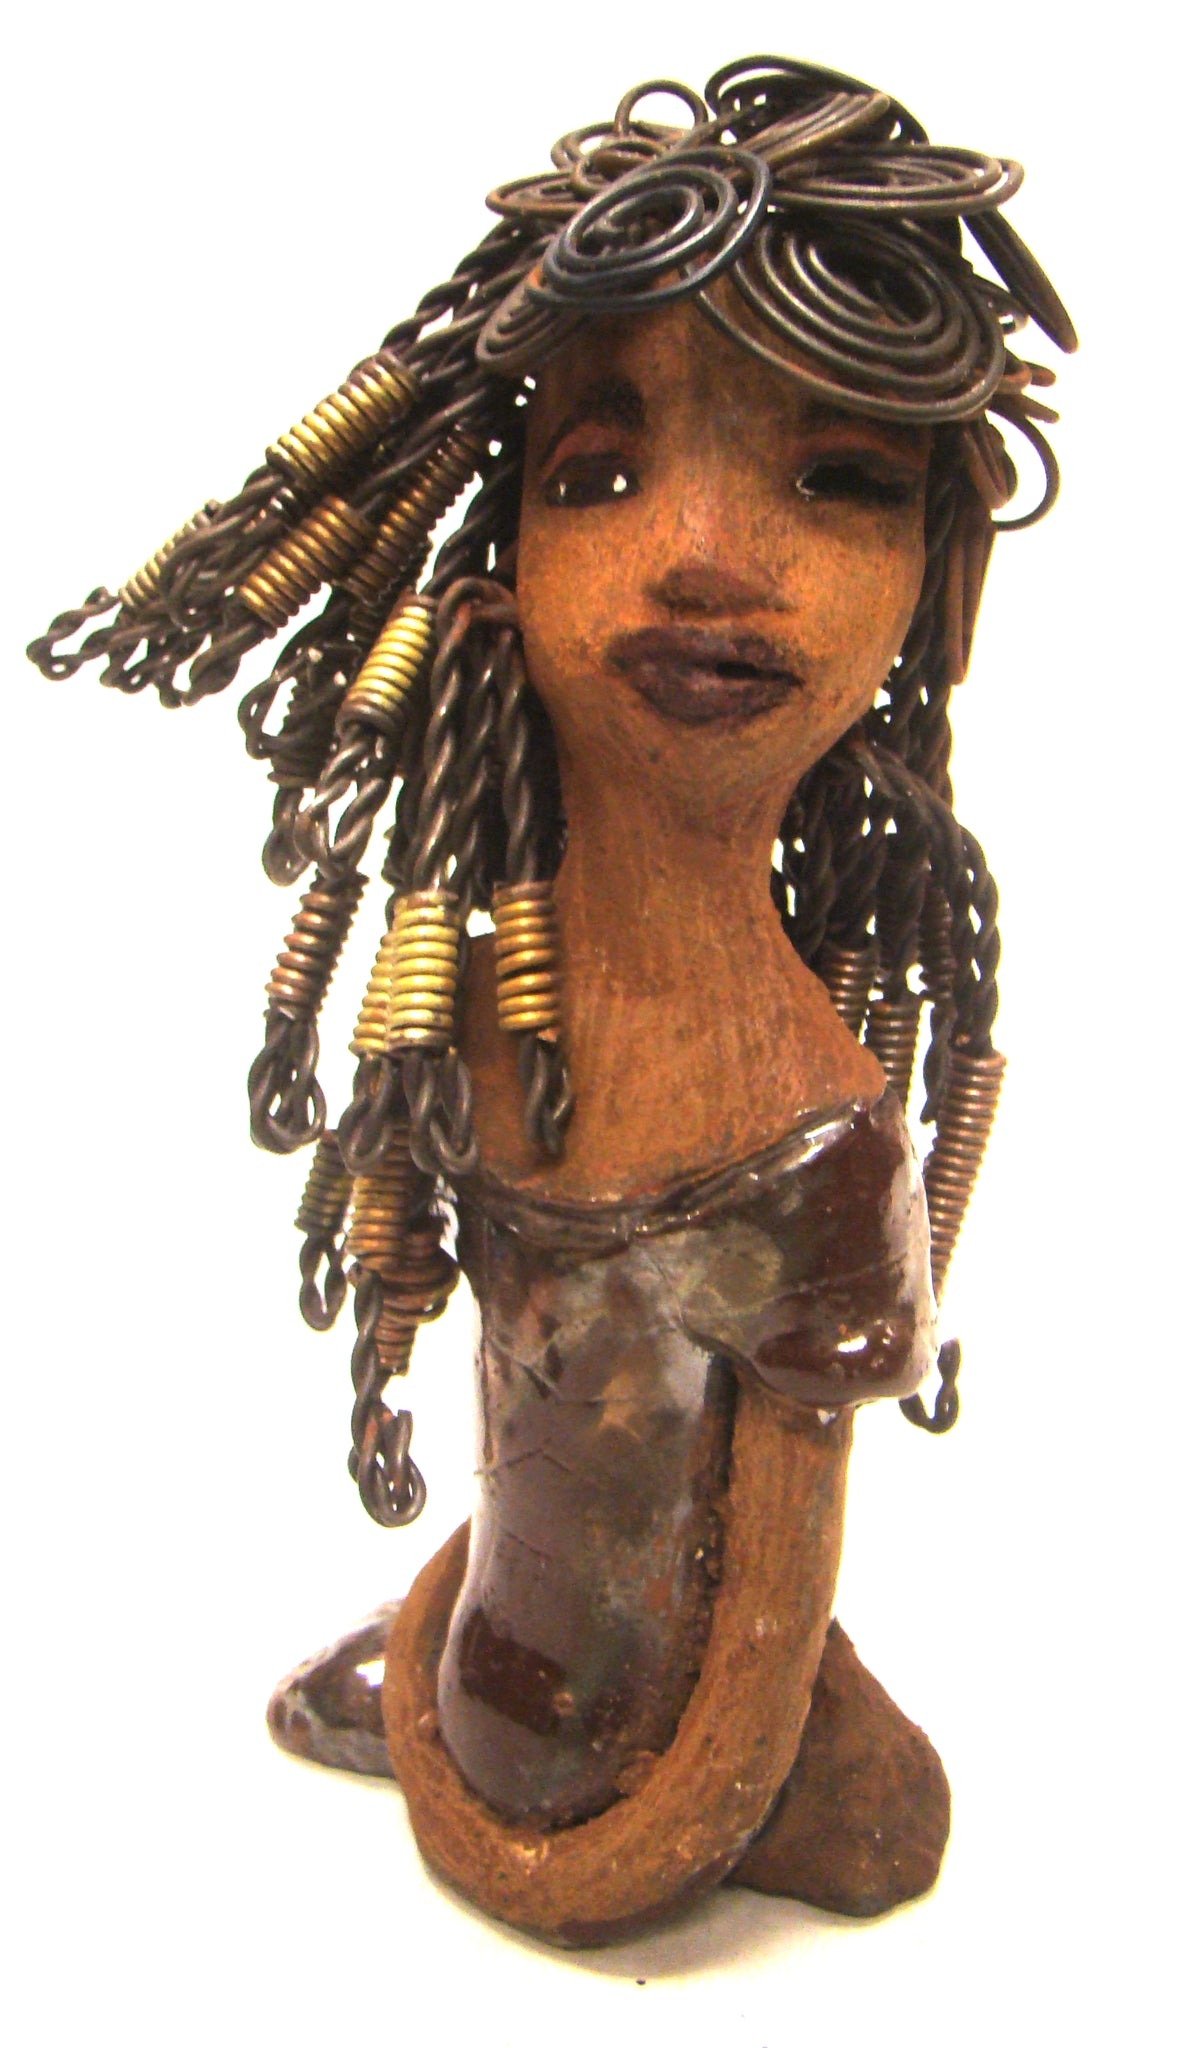 "Meet Grace! Grace stands 8"" x 4"" x 3"" and weighs 1.07 lbs. She has a lovely honey brown complexion. Her dress has a glossy raku copper glaze. Grace has over 30 feet of coiled wire hair with gold dread clips. It took over 5 hours just to complete her hair! Grace has long loving arms at her side. Grace eyes are bright with anticipation of finding a new home. Free Shipping!"